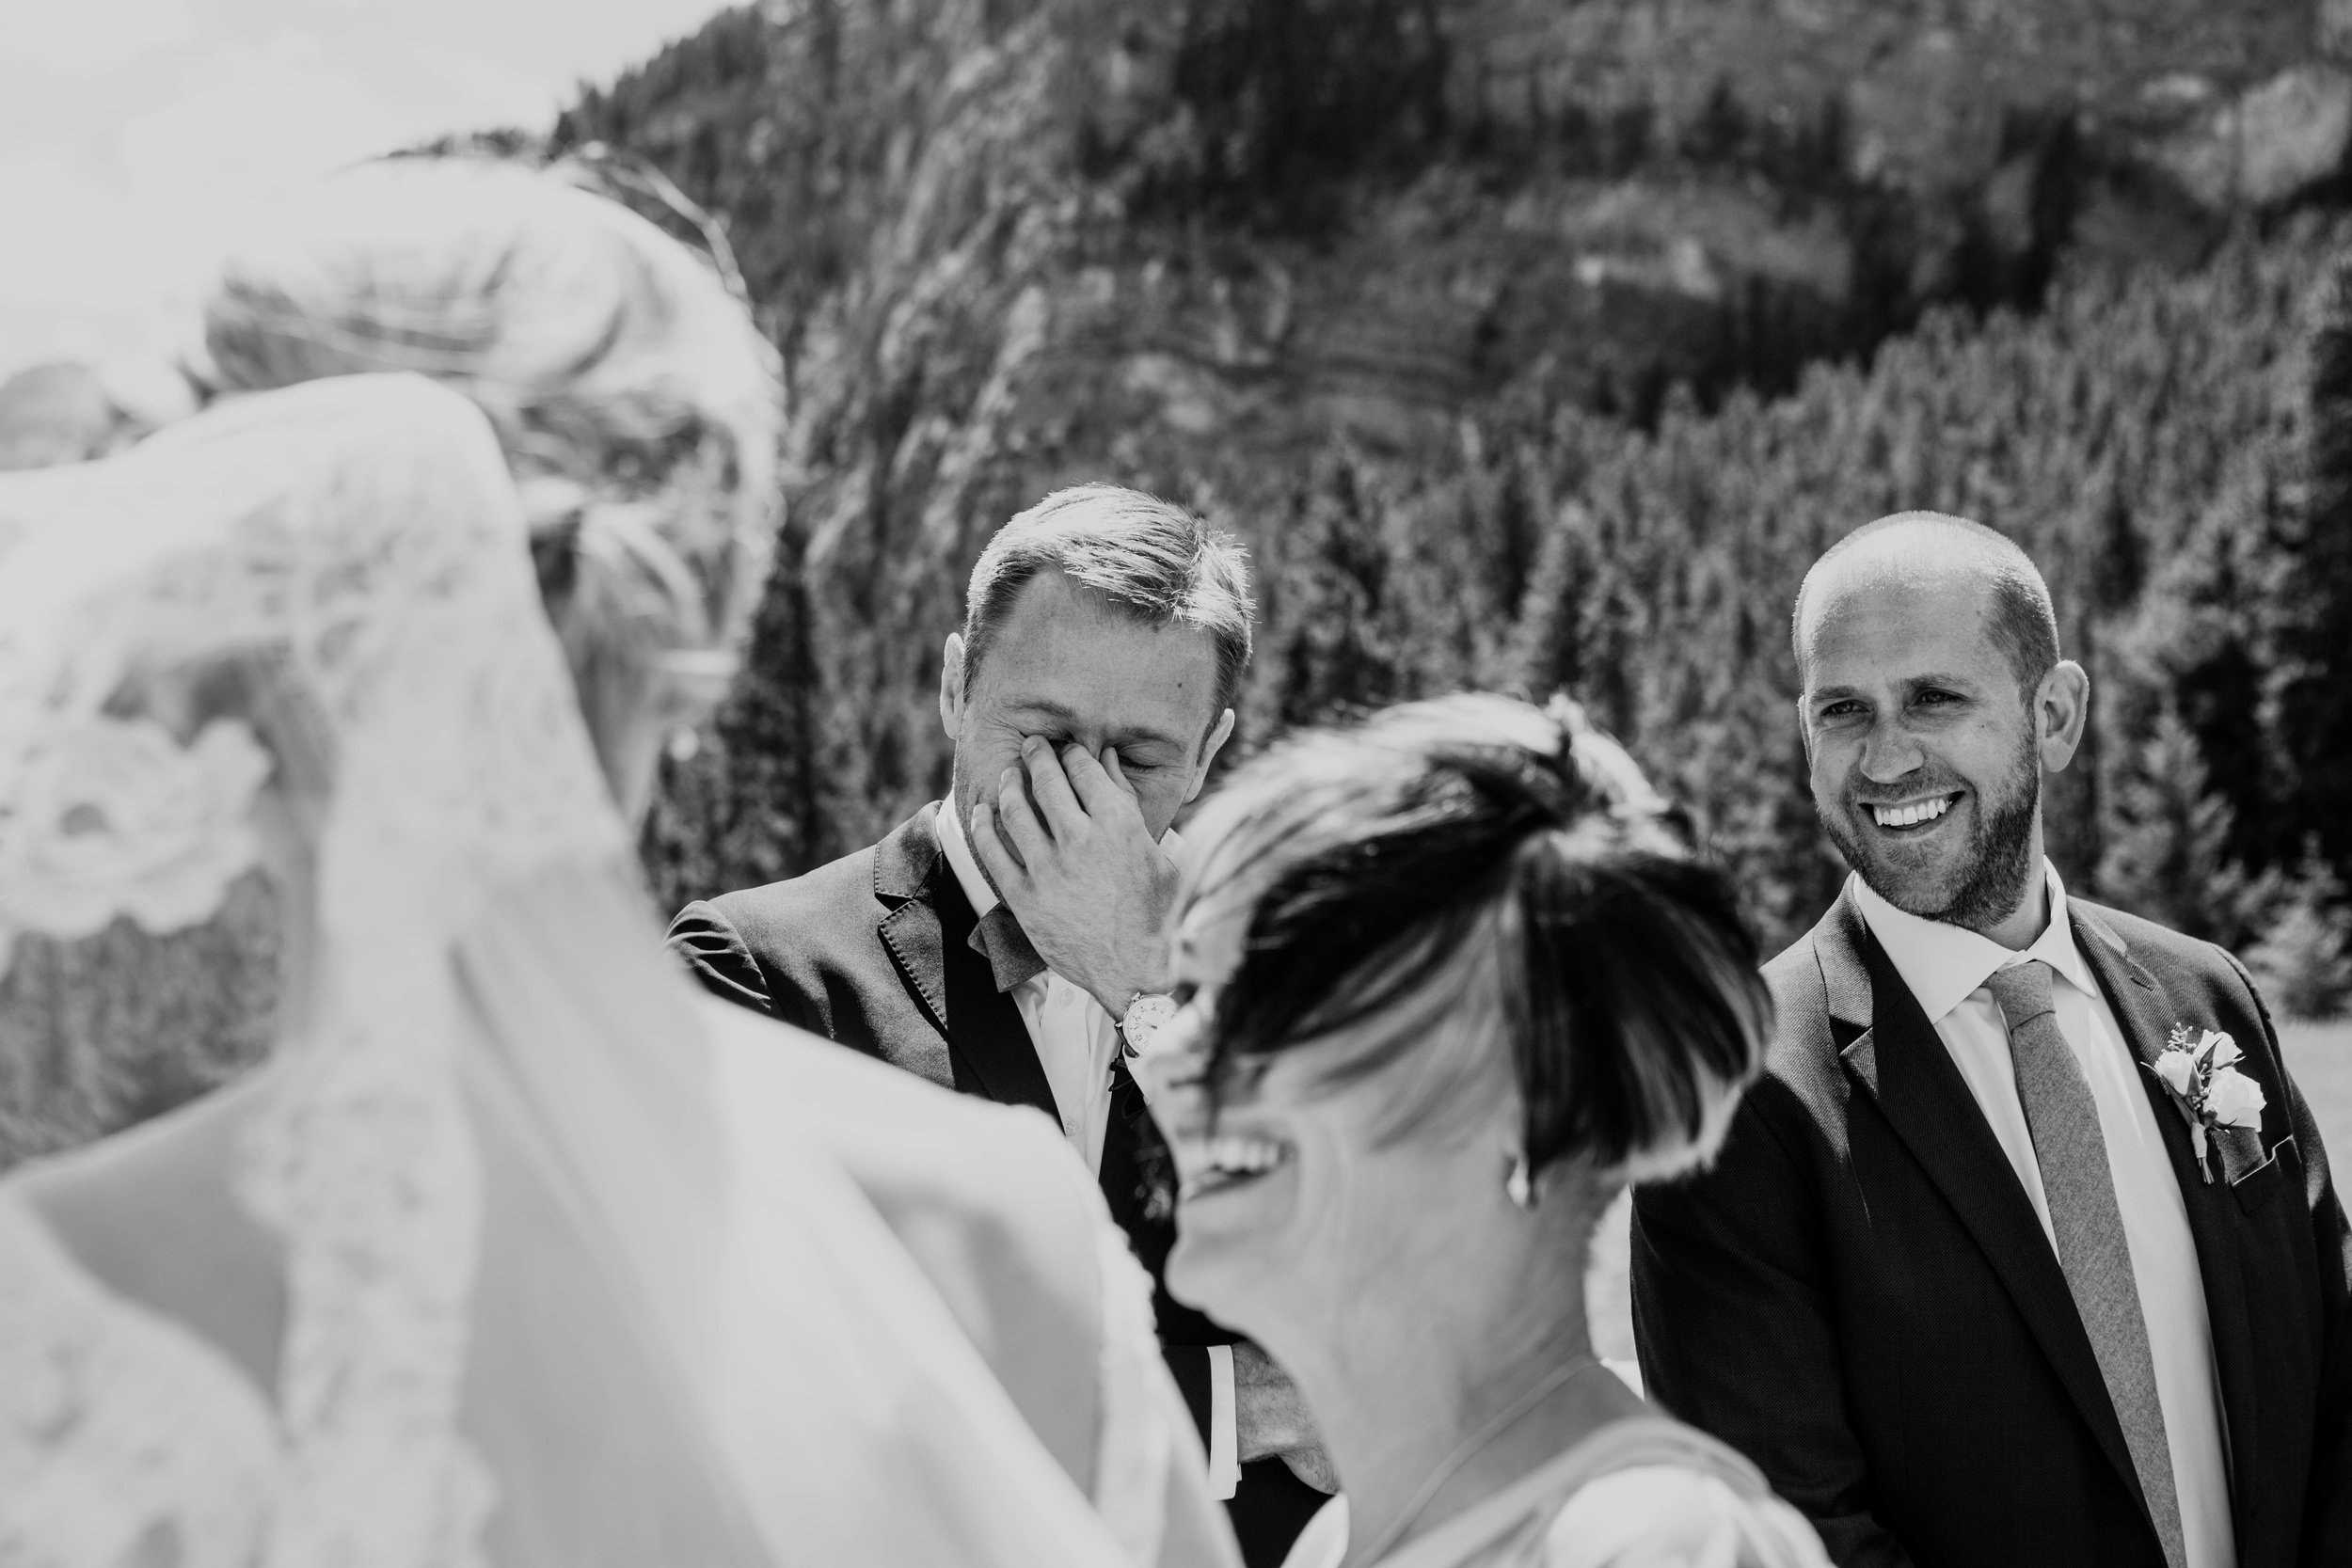 the cannons - This husband and wife team heads out into the wilds of British Columbia to snap photos, and man, do they do romance justice.All's they needed was a fresh coat of copy to put a new gust of wind in their wedding sails.